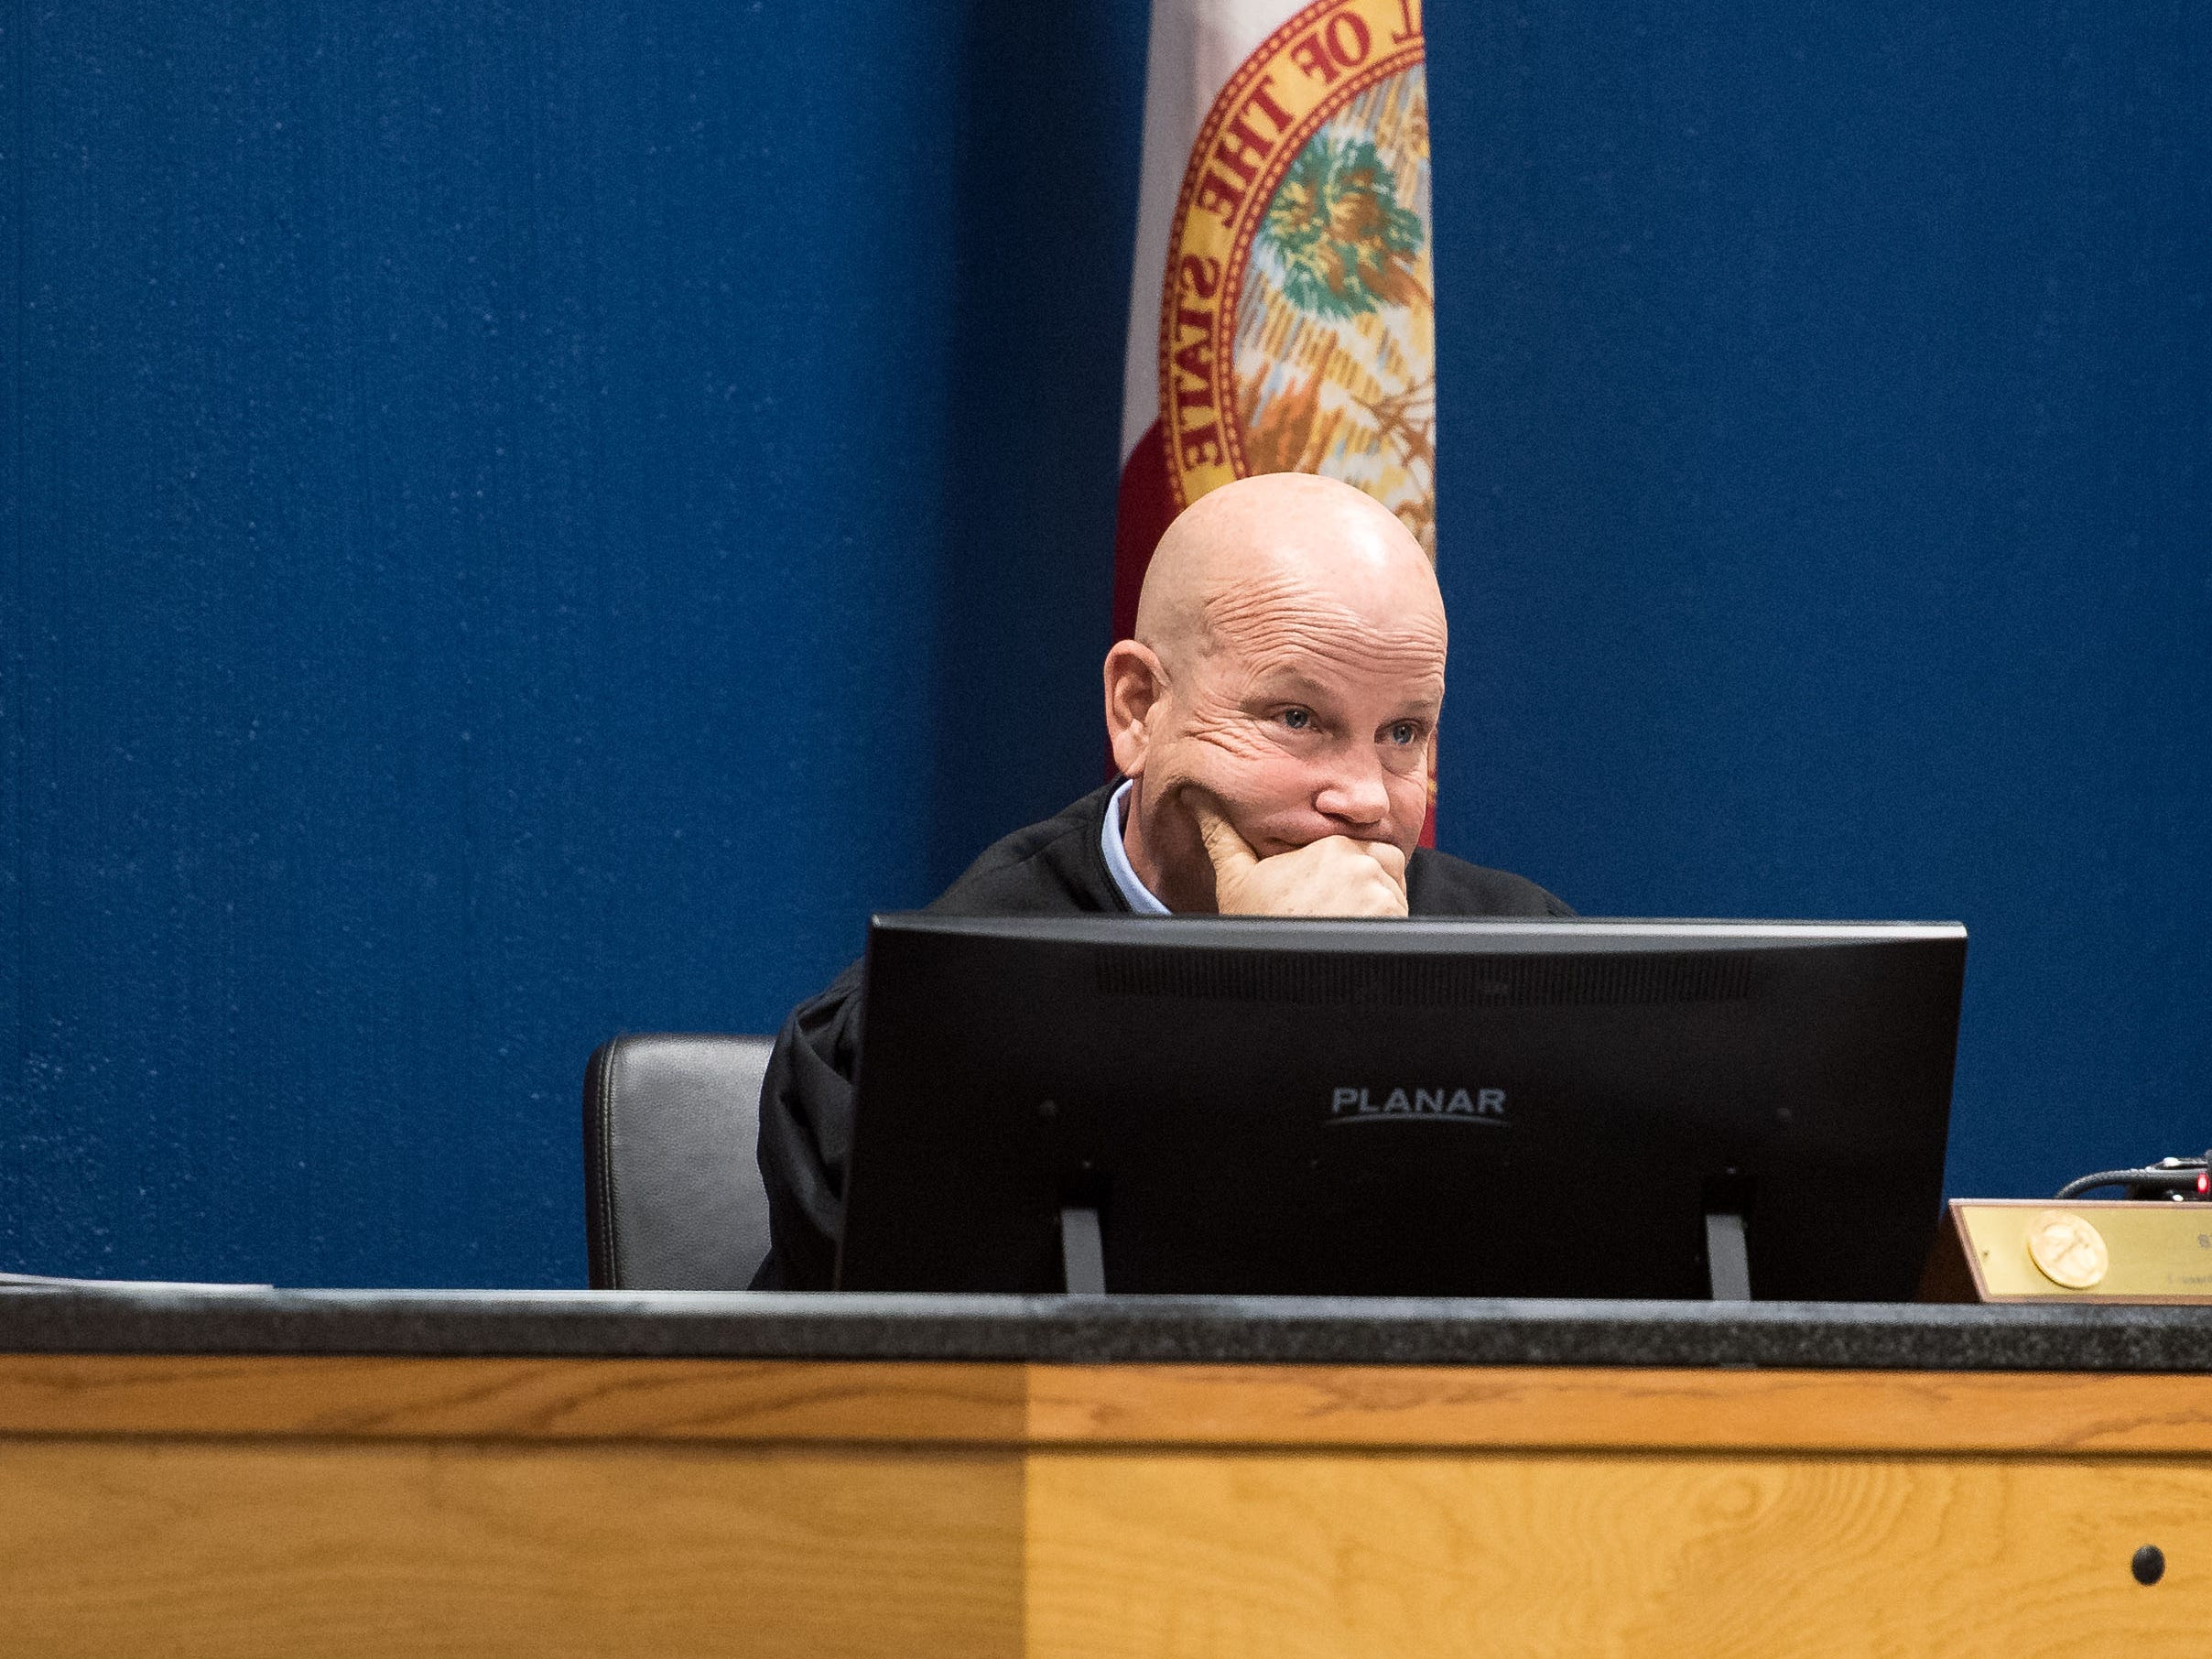 Judge Sherwood Bauer listens to lawyers for Austin Harrouff and the state prosecution Wednesday, Feb. 6, 2019, at the Martin County Courthouse in Stuart.